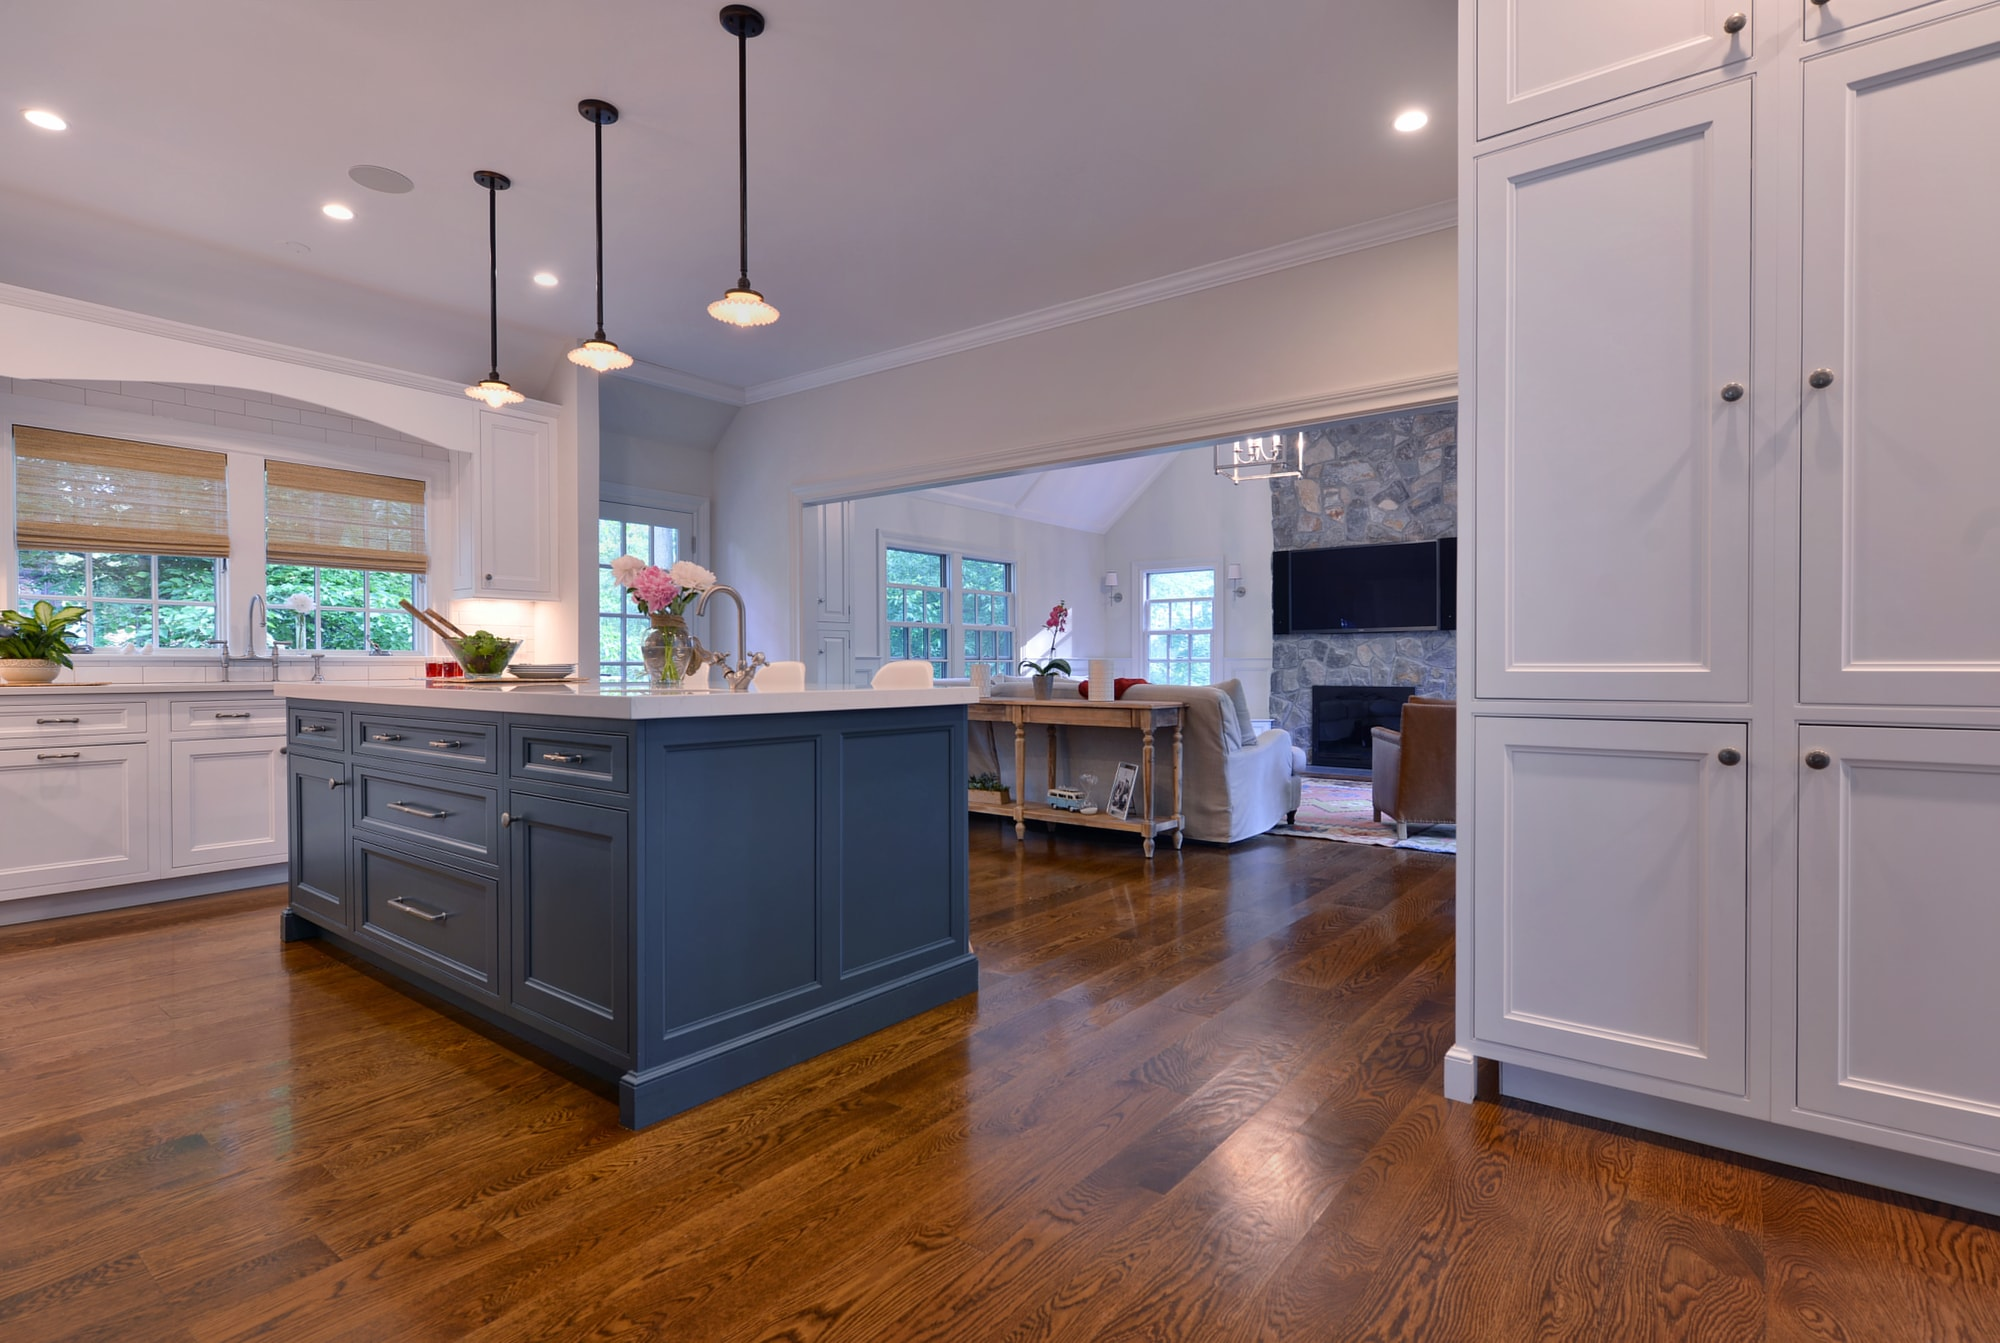 Transitional style kitchen with spacious wooden floor